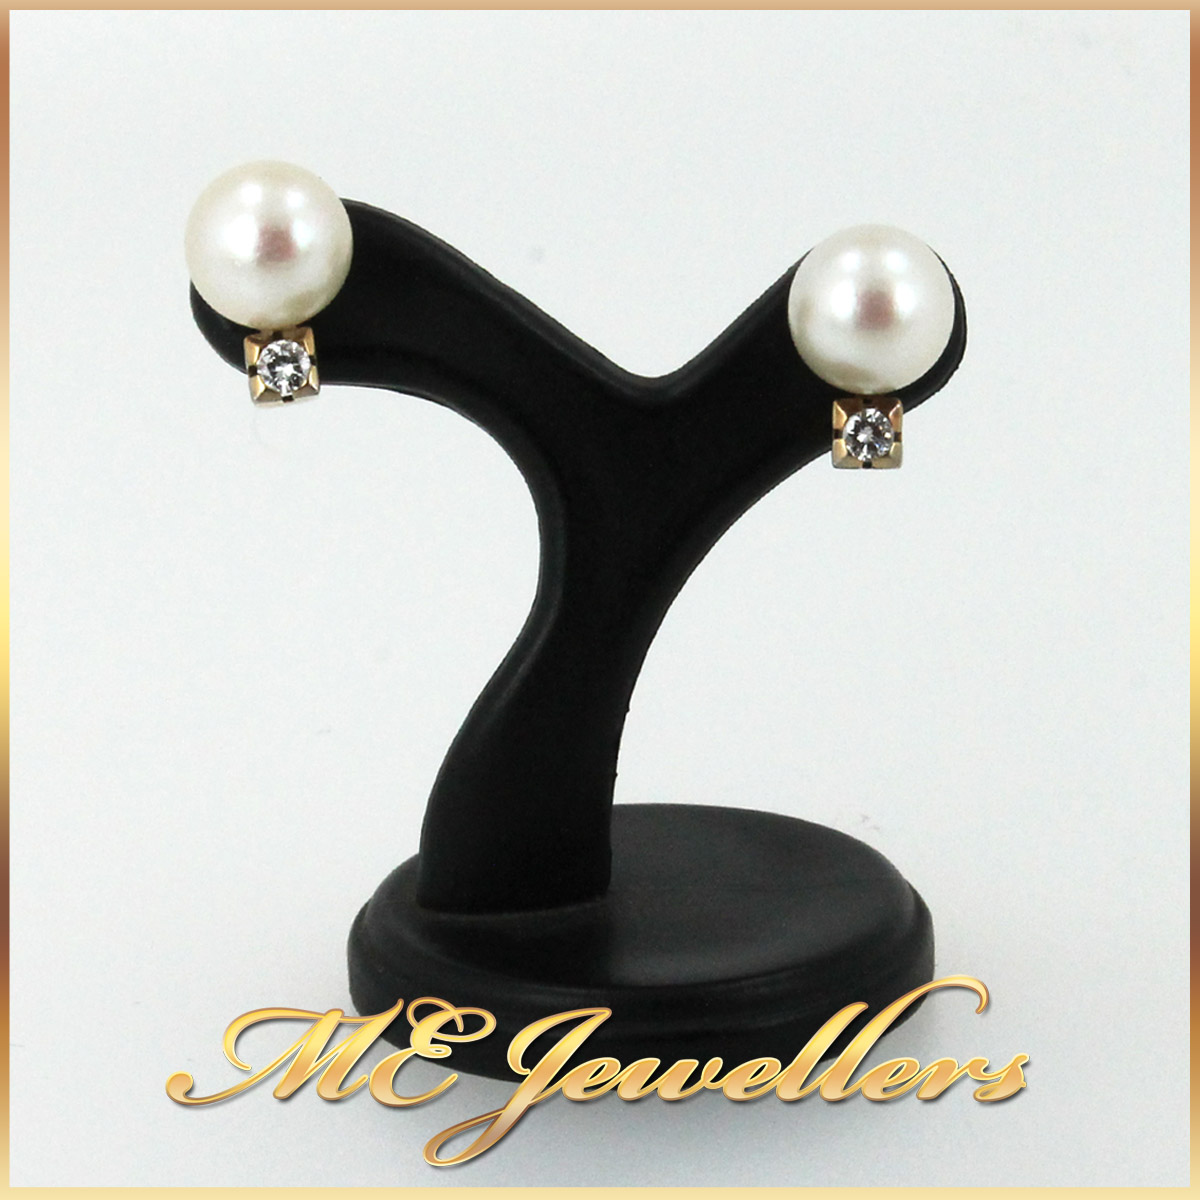 4879 Pearl Earrings With Diamonds In 9K Yellow Gold main